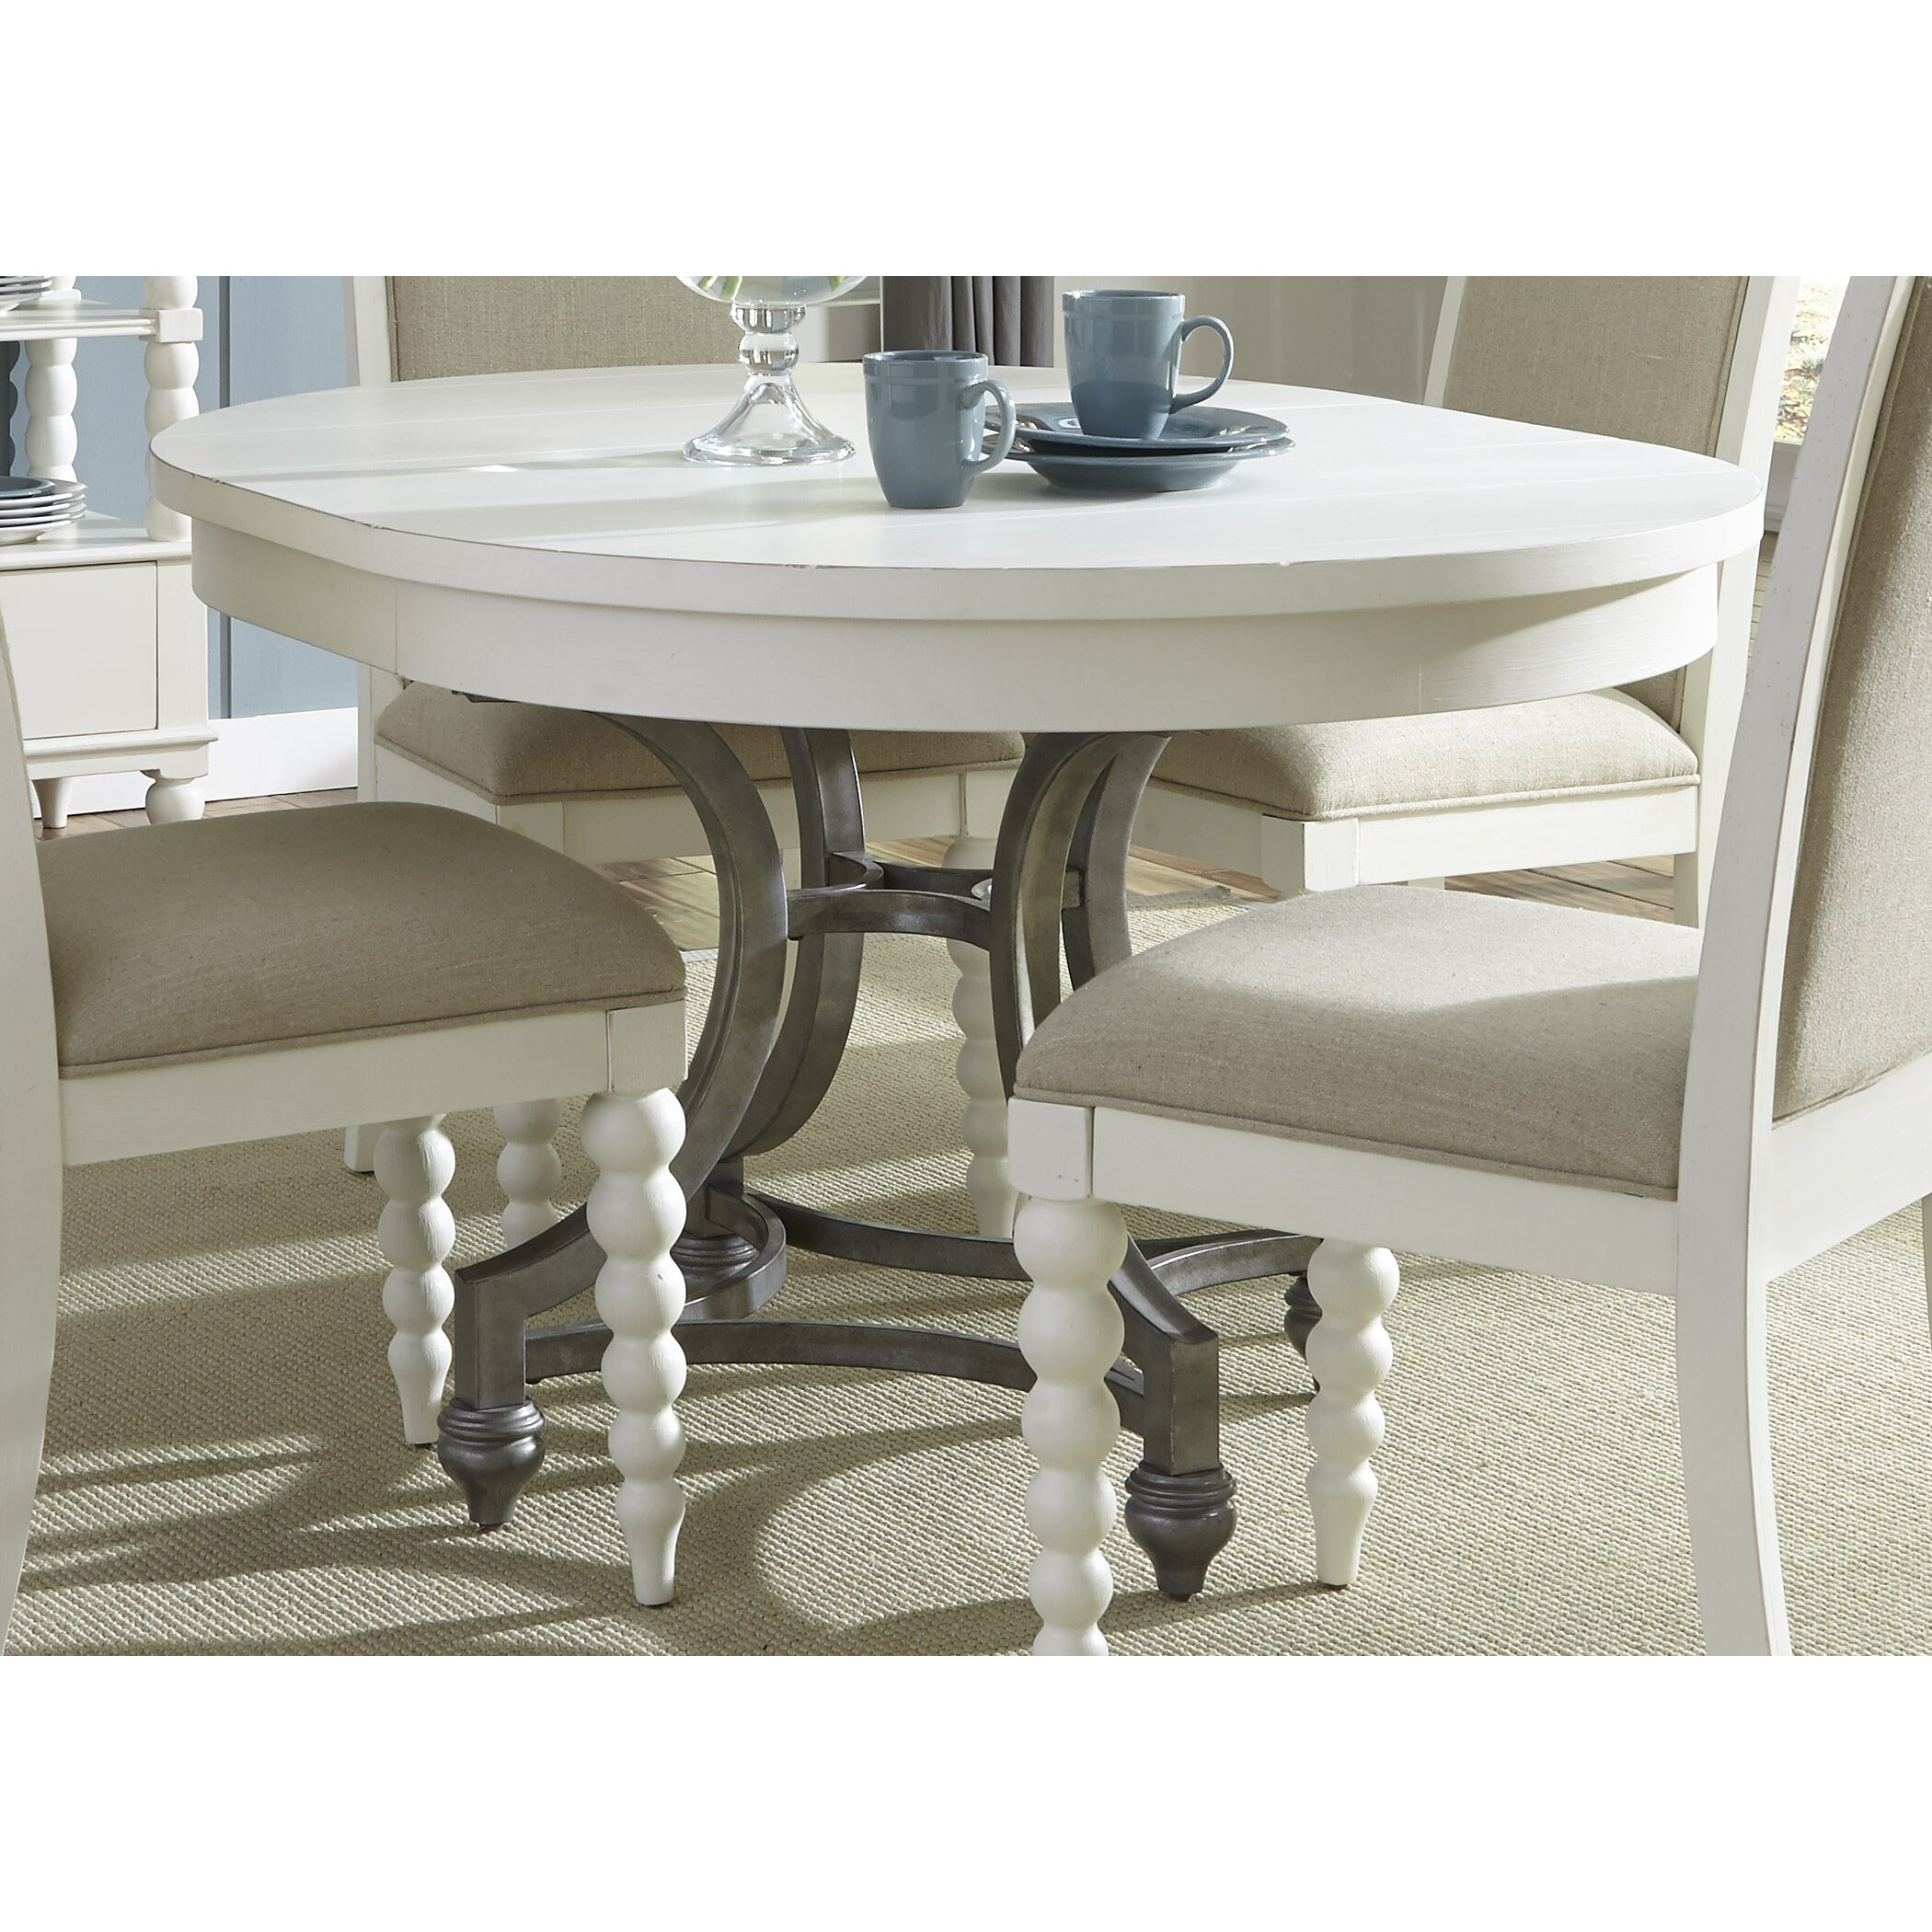 Round Kitchen Tables: Beachcrest Home Stamford Round Dining Table & Reviews